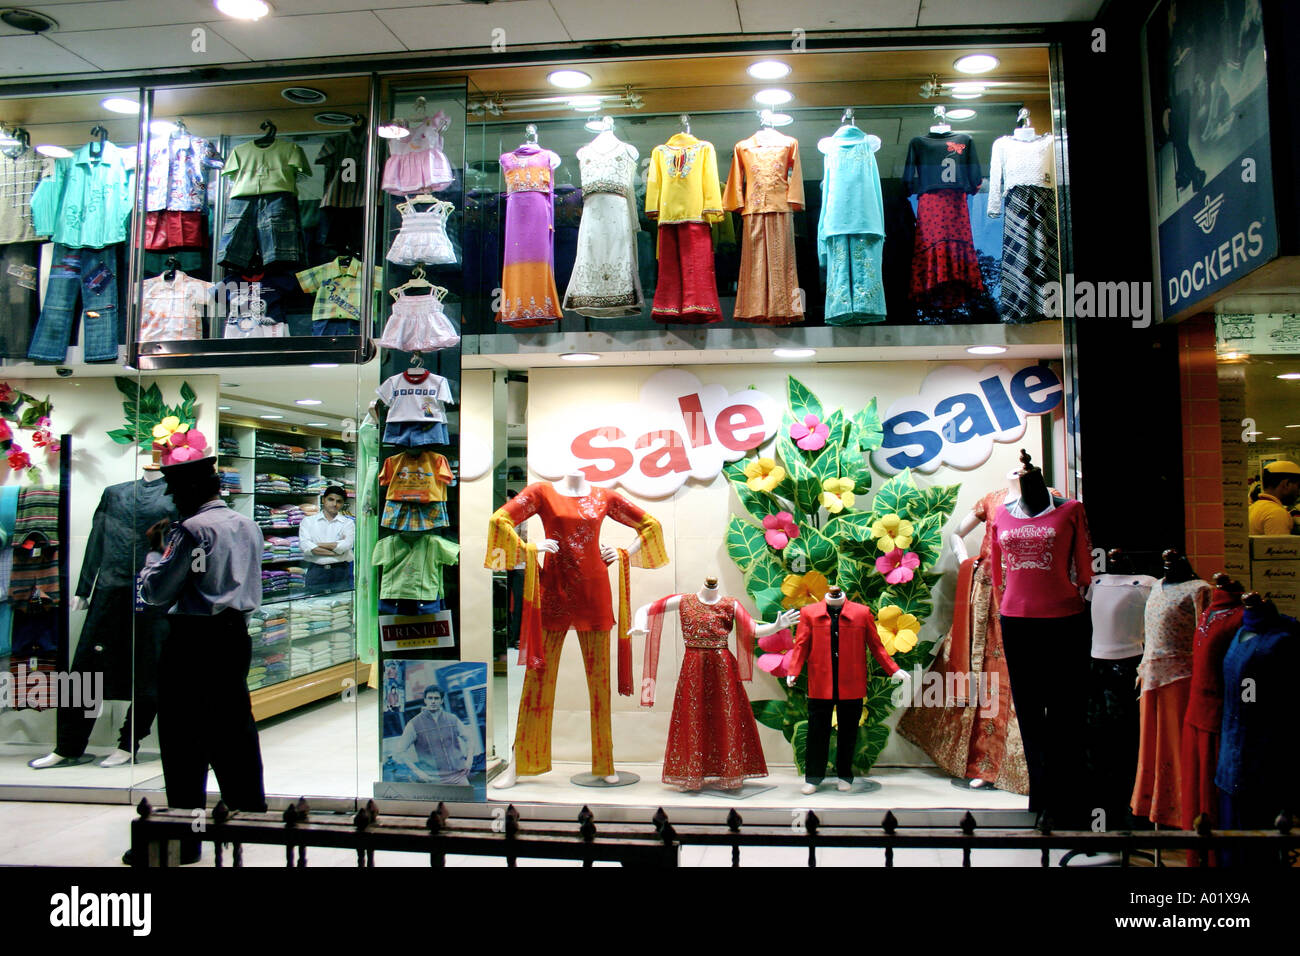 05807719c2 RSC0217 Show window of Garment shop with the word SALE at Andheri west  Bombay now Mumbai Maharastra India